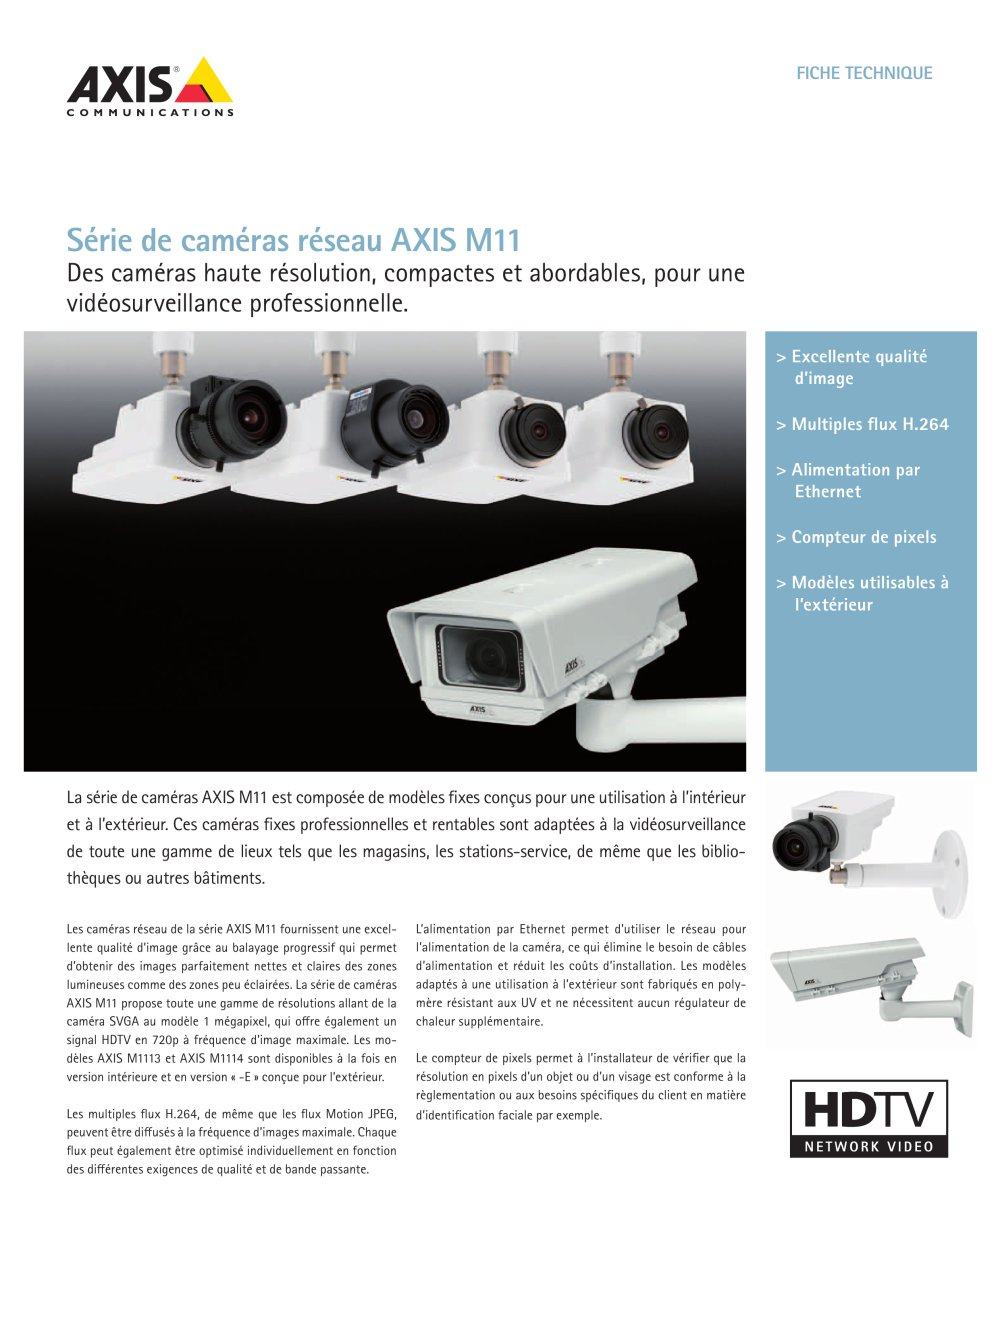 Camera Exterieur Qualite Axis M11 Network Camera Series Axis Communications Catálogo